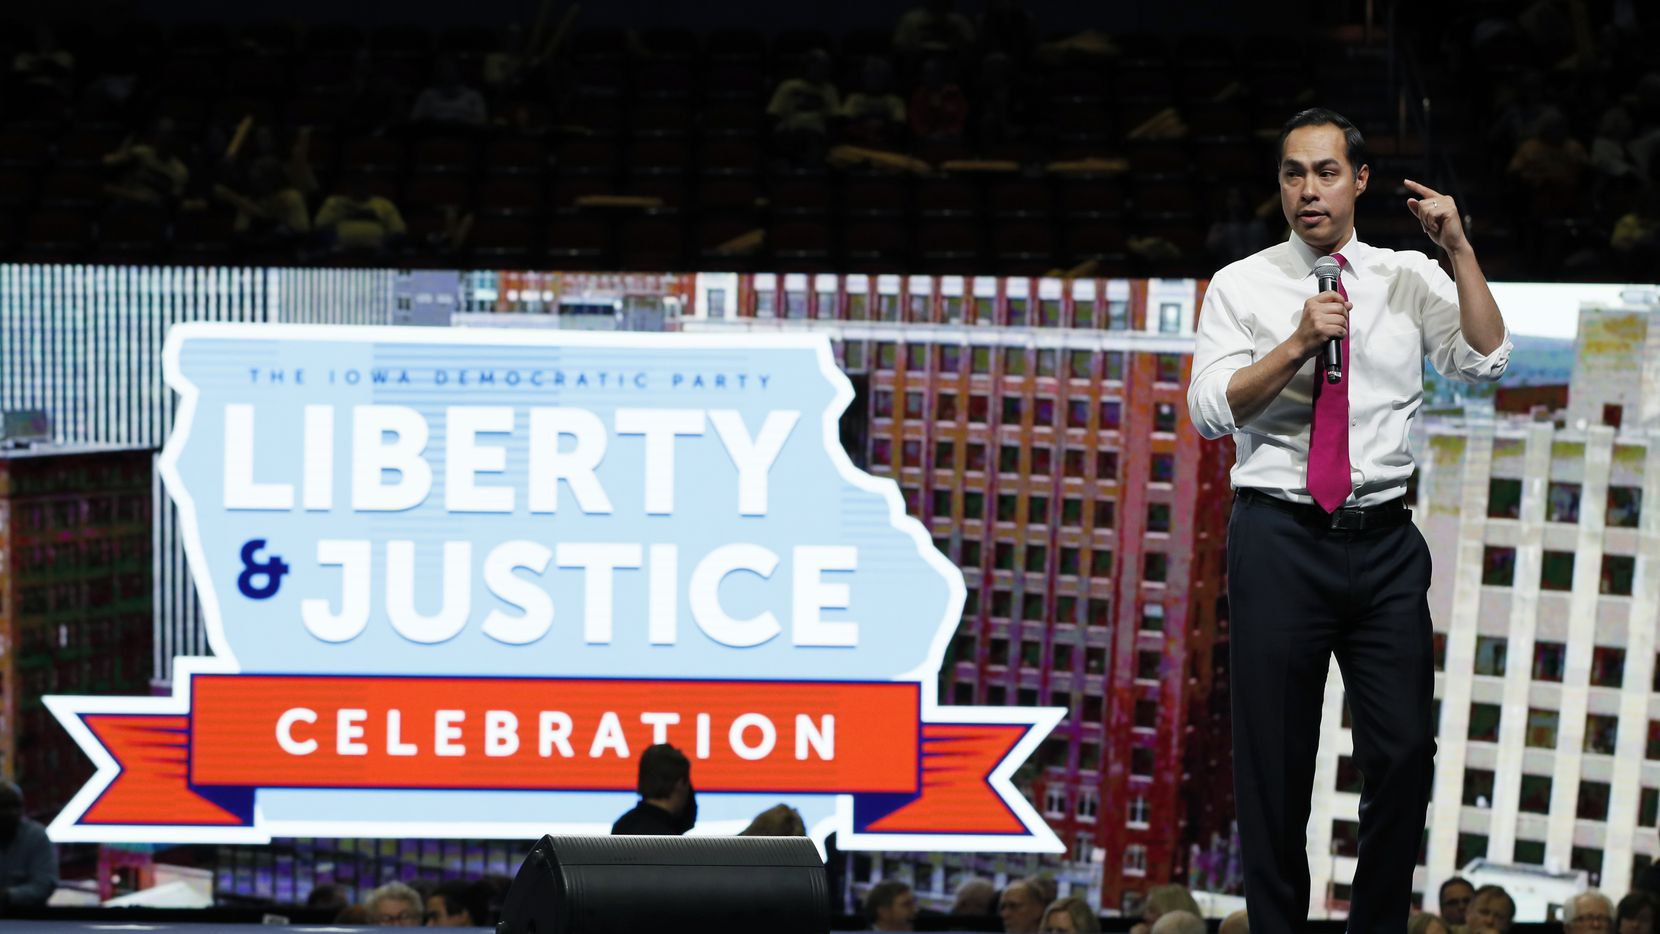 Democratic presidential candidate former U.S. Secretary of Housing and Urban Development Julian Castro speaks during the Iowa Democratic Party's Liberty and Justice Celebration, Friday, Nov. 1, 2019, in Des Moines, Iowa. (AP Photo/Charlie Neibergall)